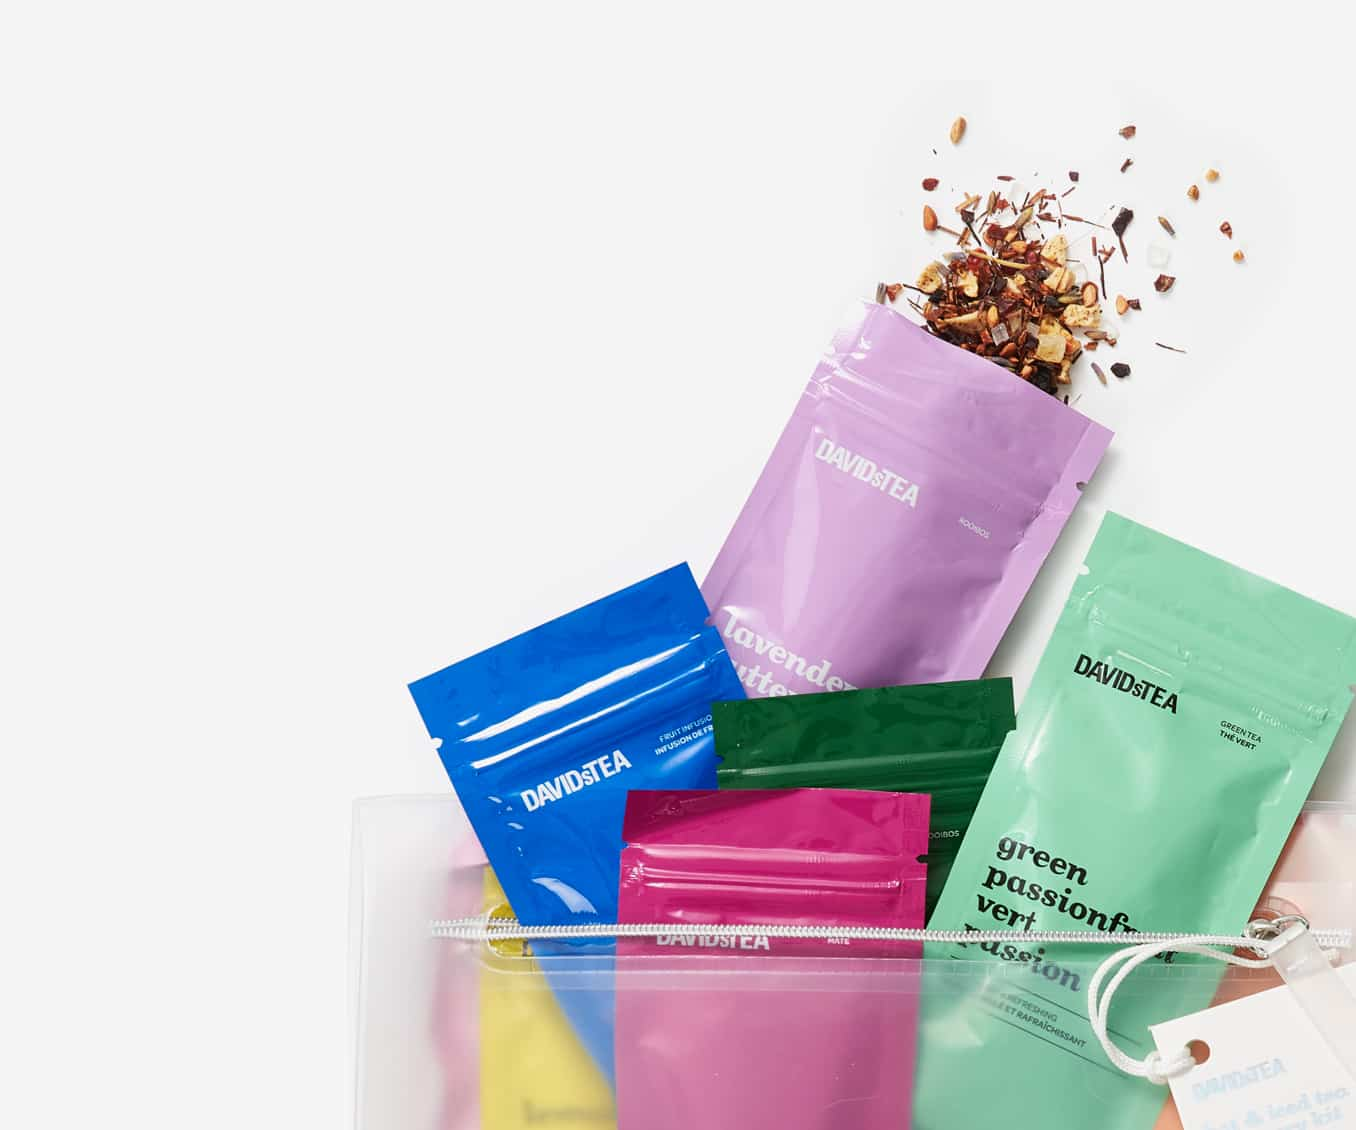 Shop Hot & Iced Tea Discovery Kit travel pouch filled with 12 loose leaf teas and infusions.